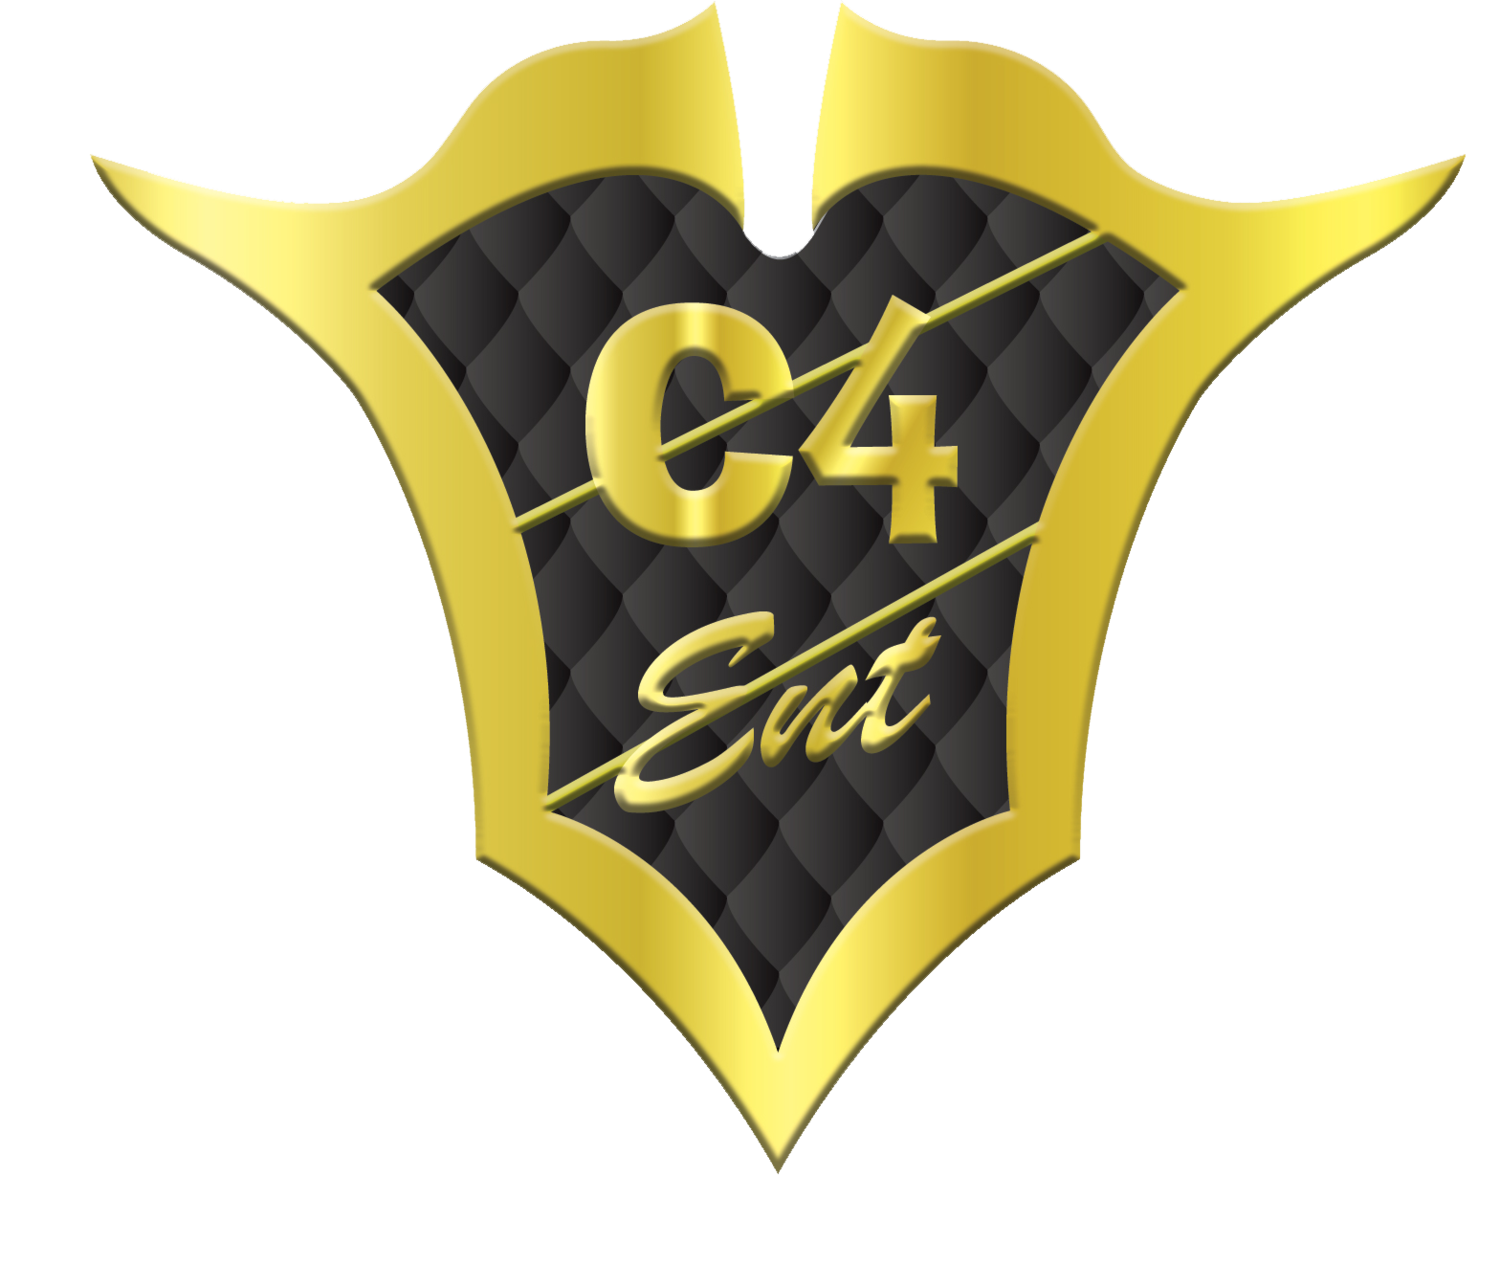 C4 Entertainment, LLC